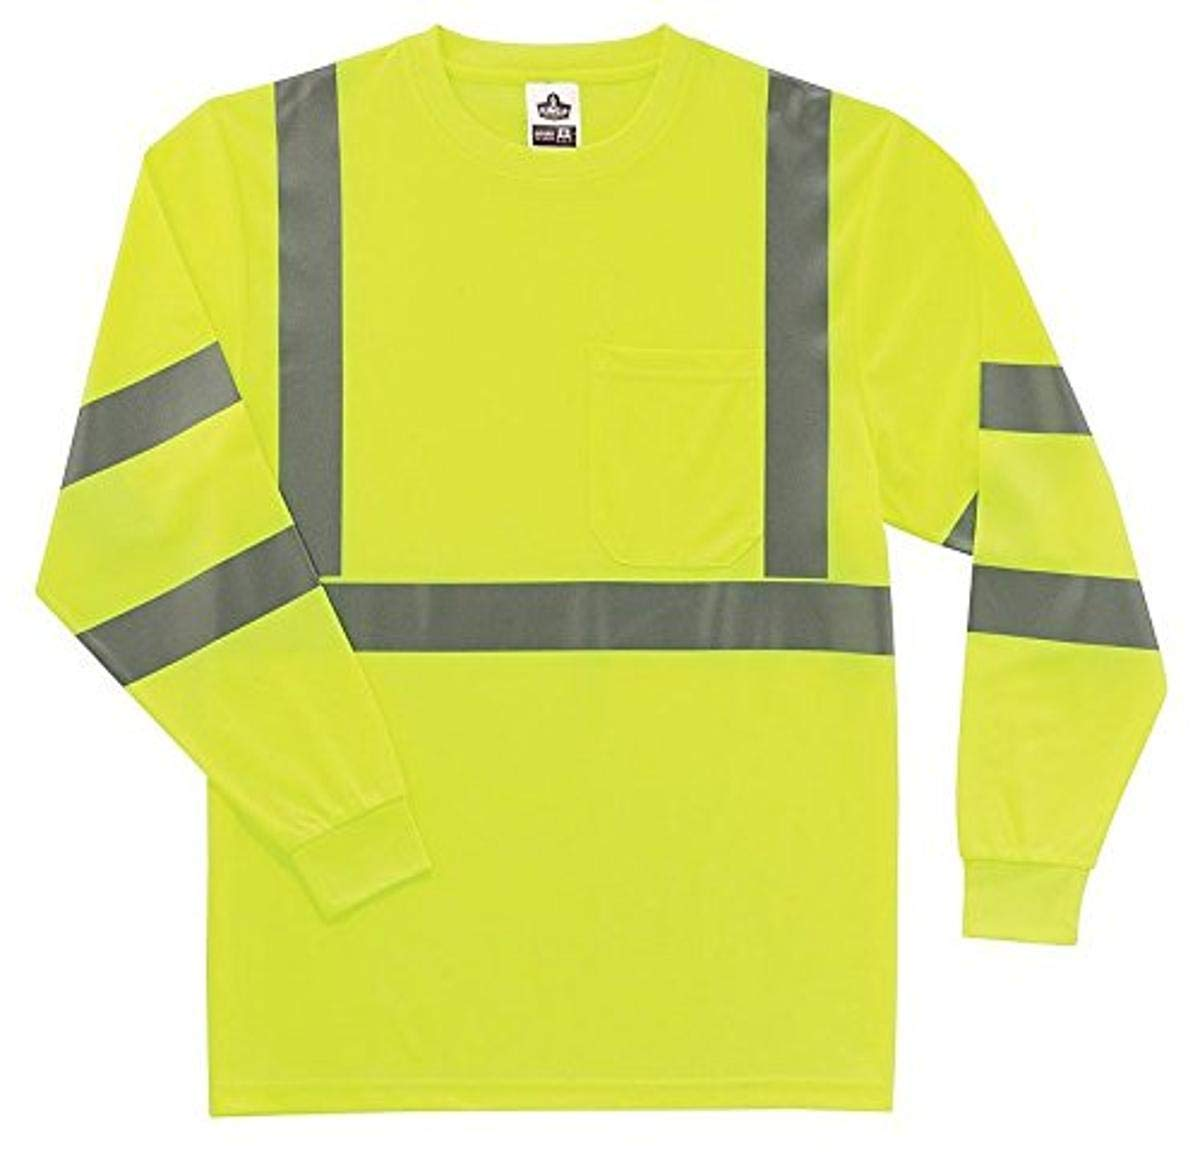 depot Dicke Limited price sale Safety Products TS350-M Reflective T-Shirt 3 Class